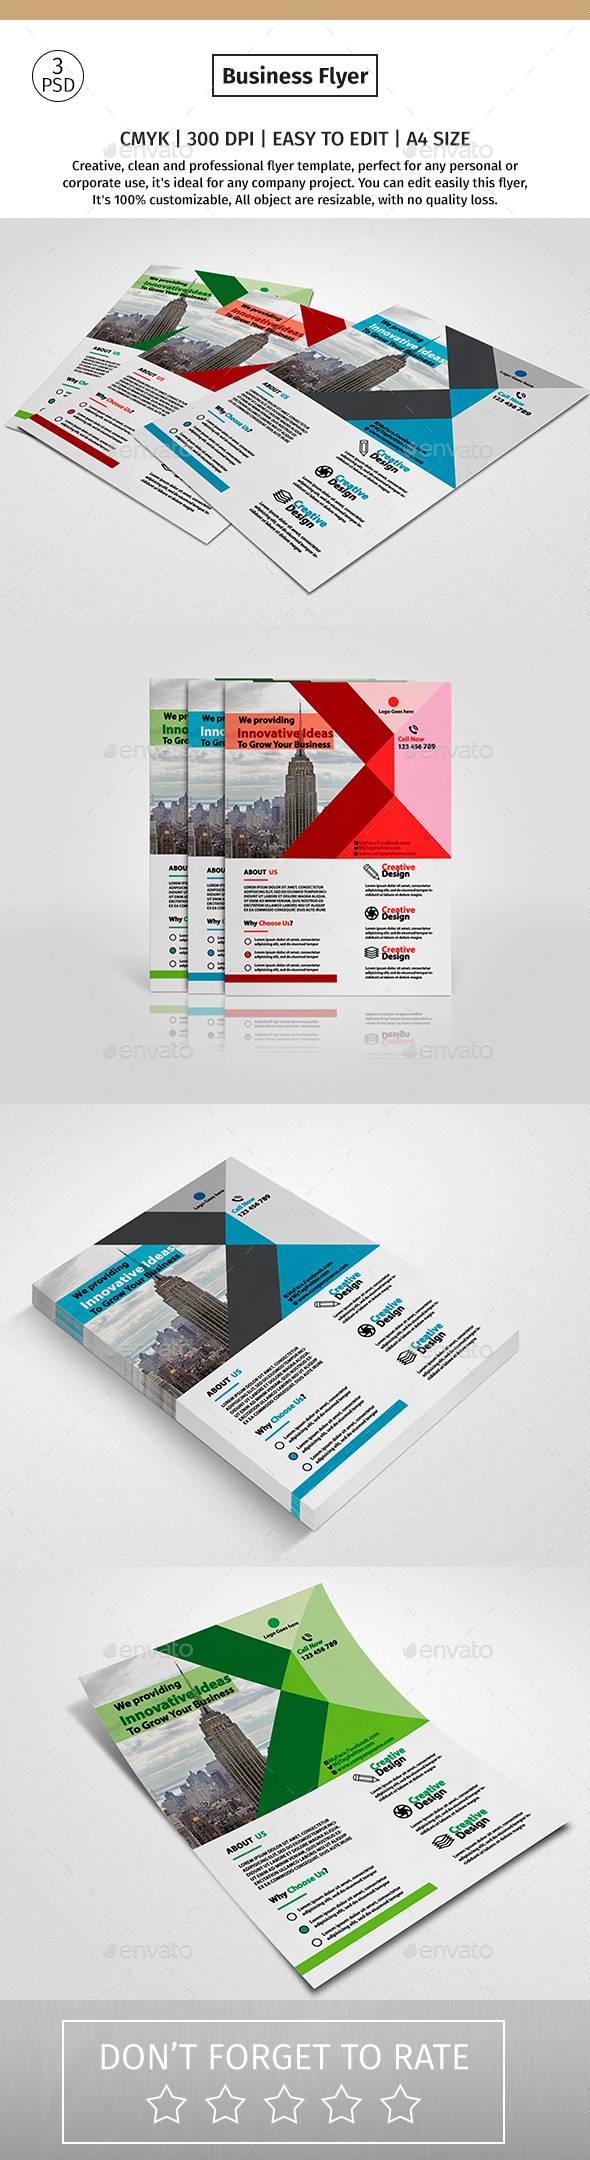 A4 Corporate Business Flyer #16 - Corporate Flyers